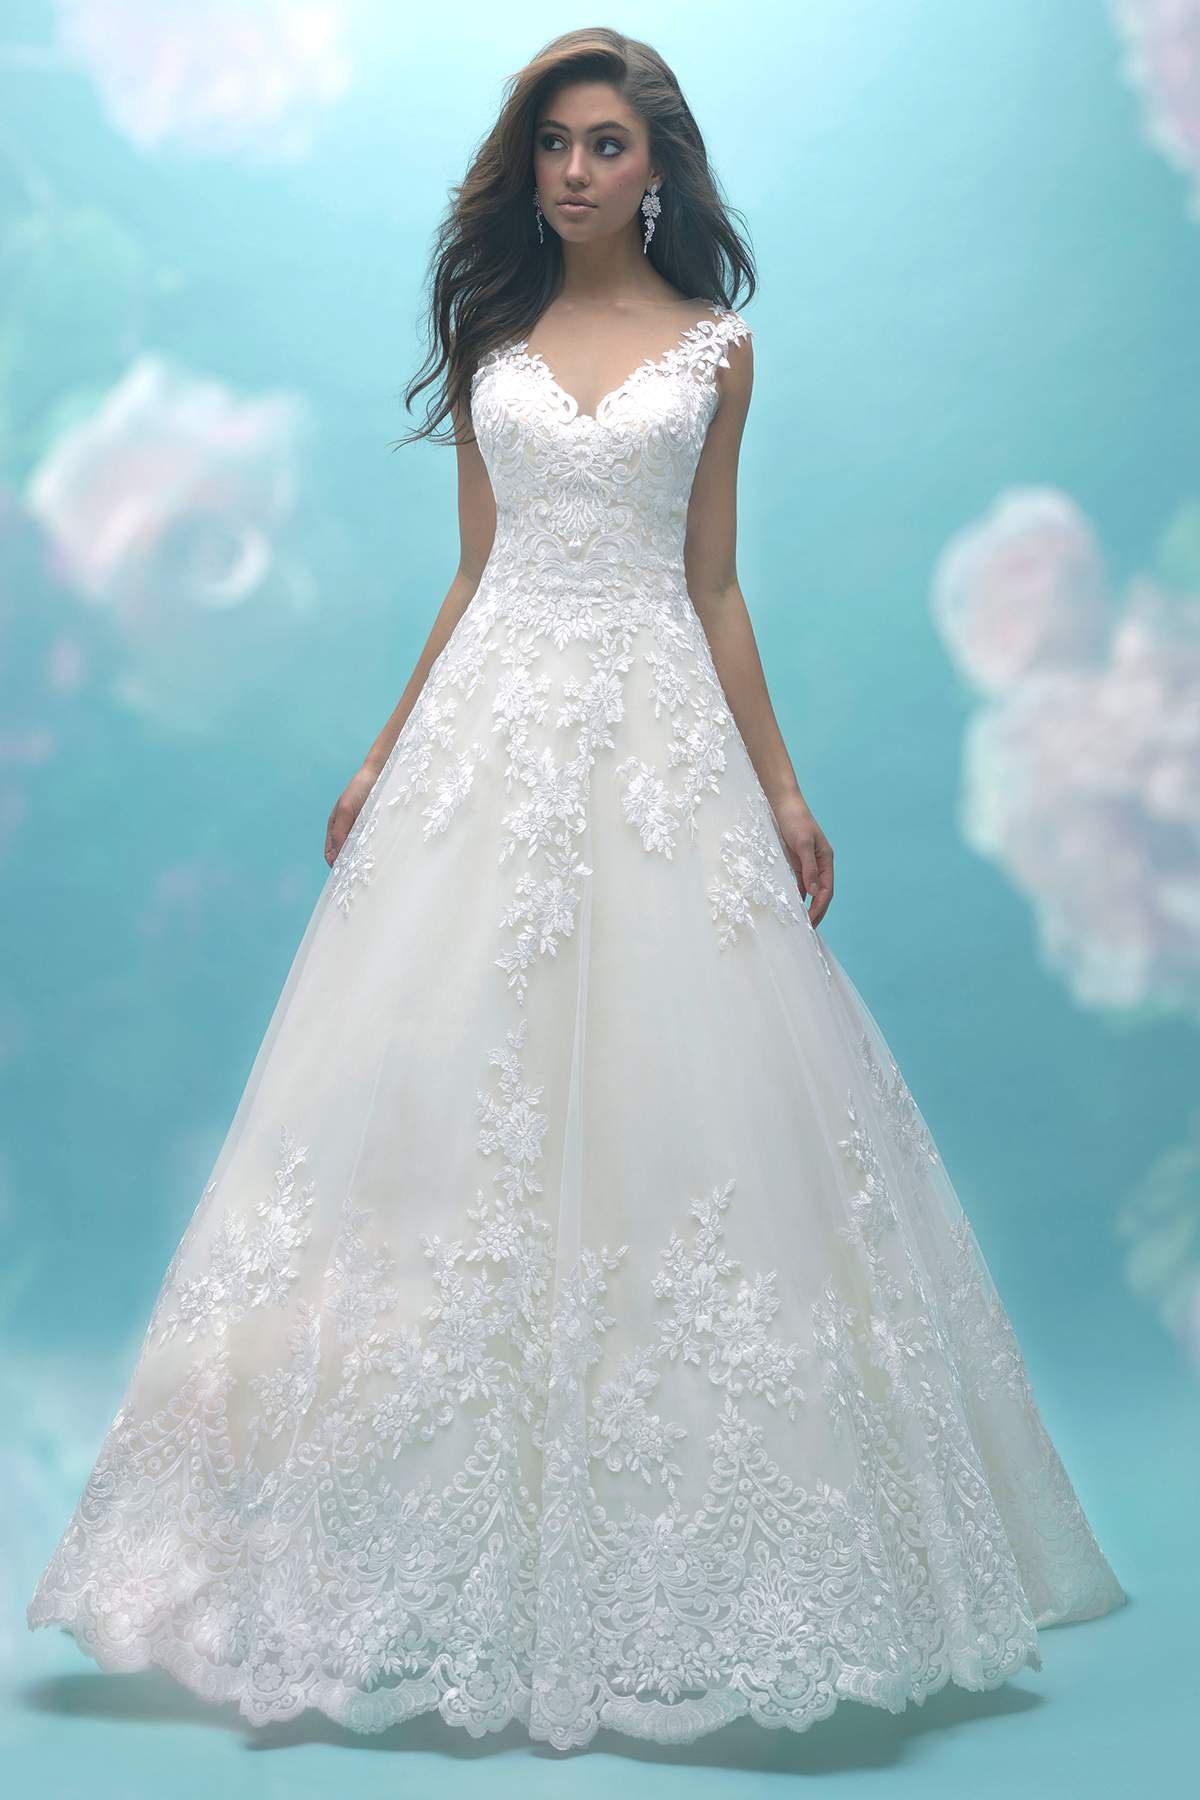 Style 9470 by Allure Bridals - Find Your Dream Dress